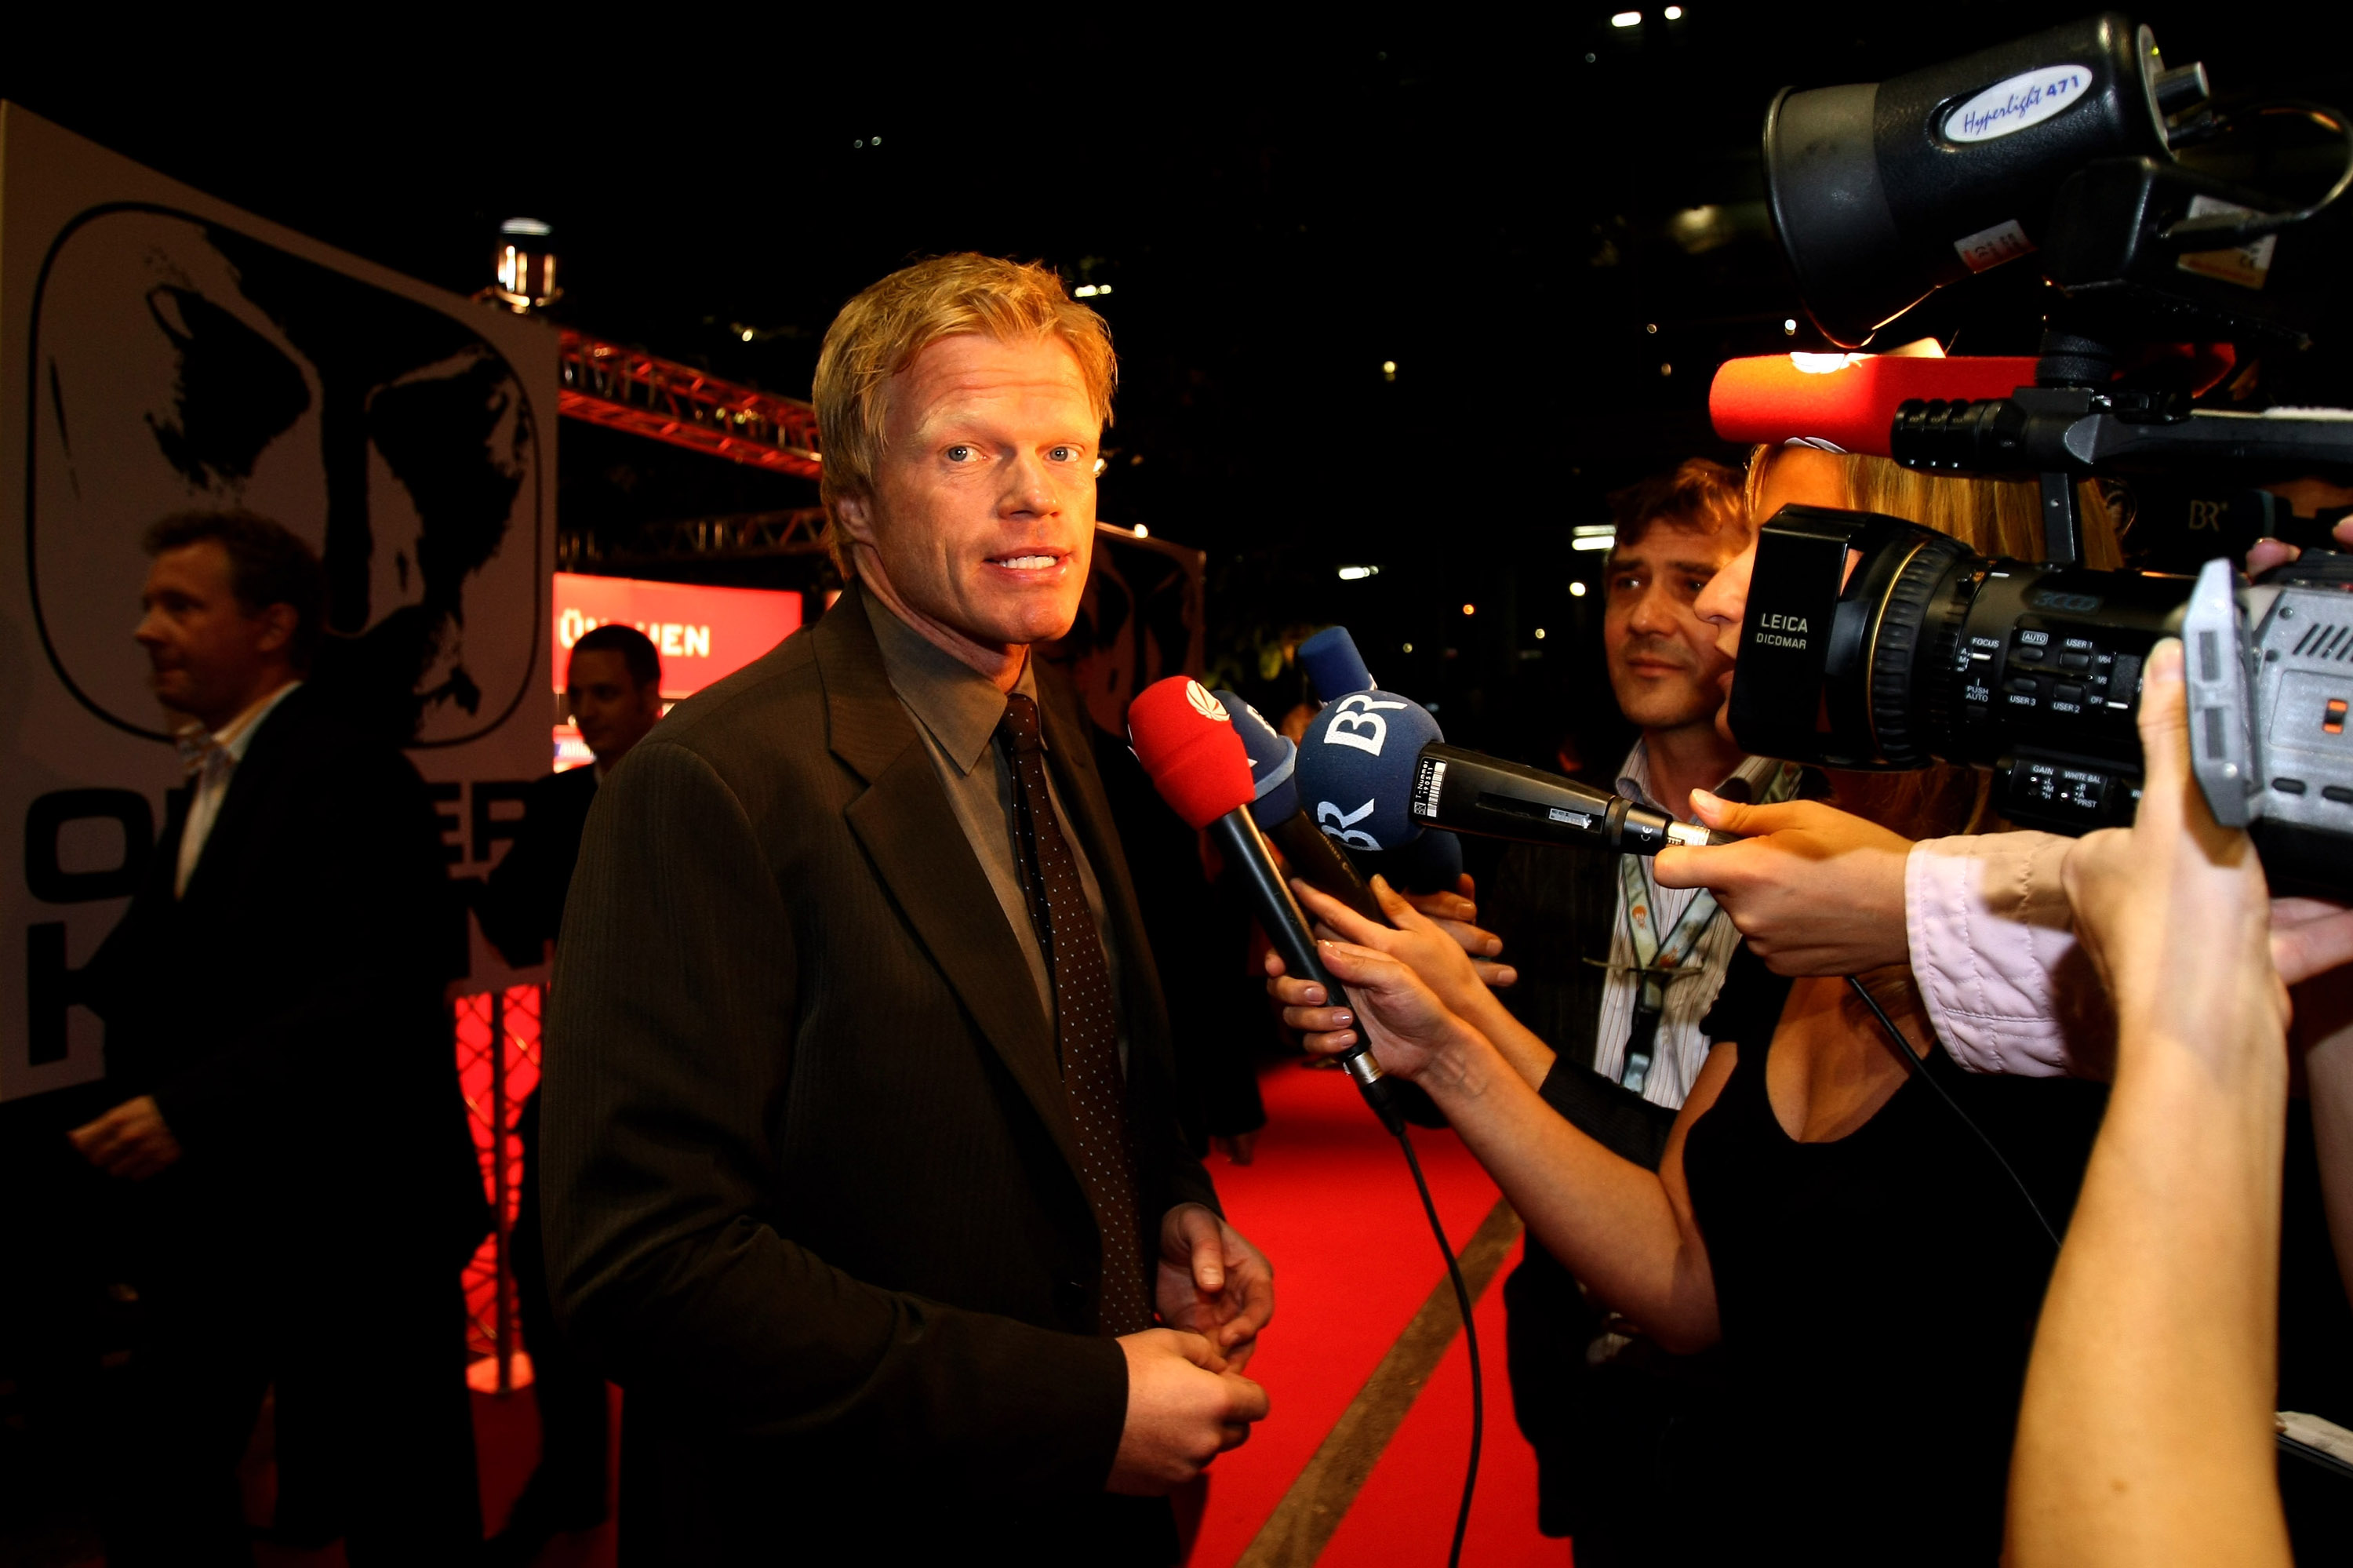 MUNICH, GERMANY - SEPTEMBER 02: (FREE FOR EDITORIAL USE - NO SALES)  Retired footballer Oliver Kahn arrives at the Oliver Kahn Farewell Gala at the German Theater tent September 2, 2008 in Munich, Germany.  (Photo by Alexander Hassenstein/Getty Images for